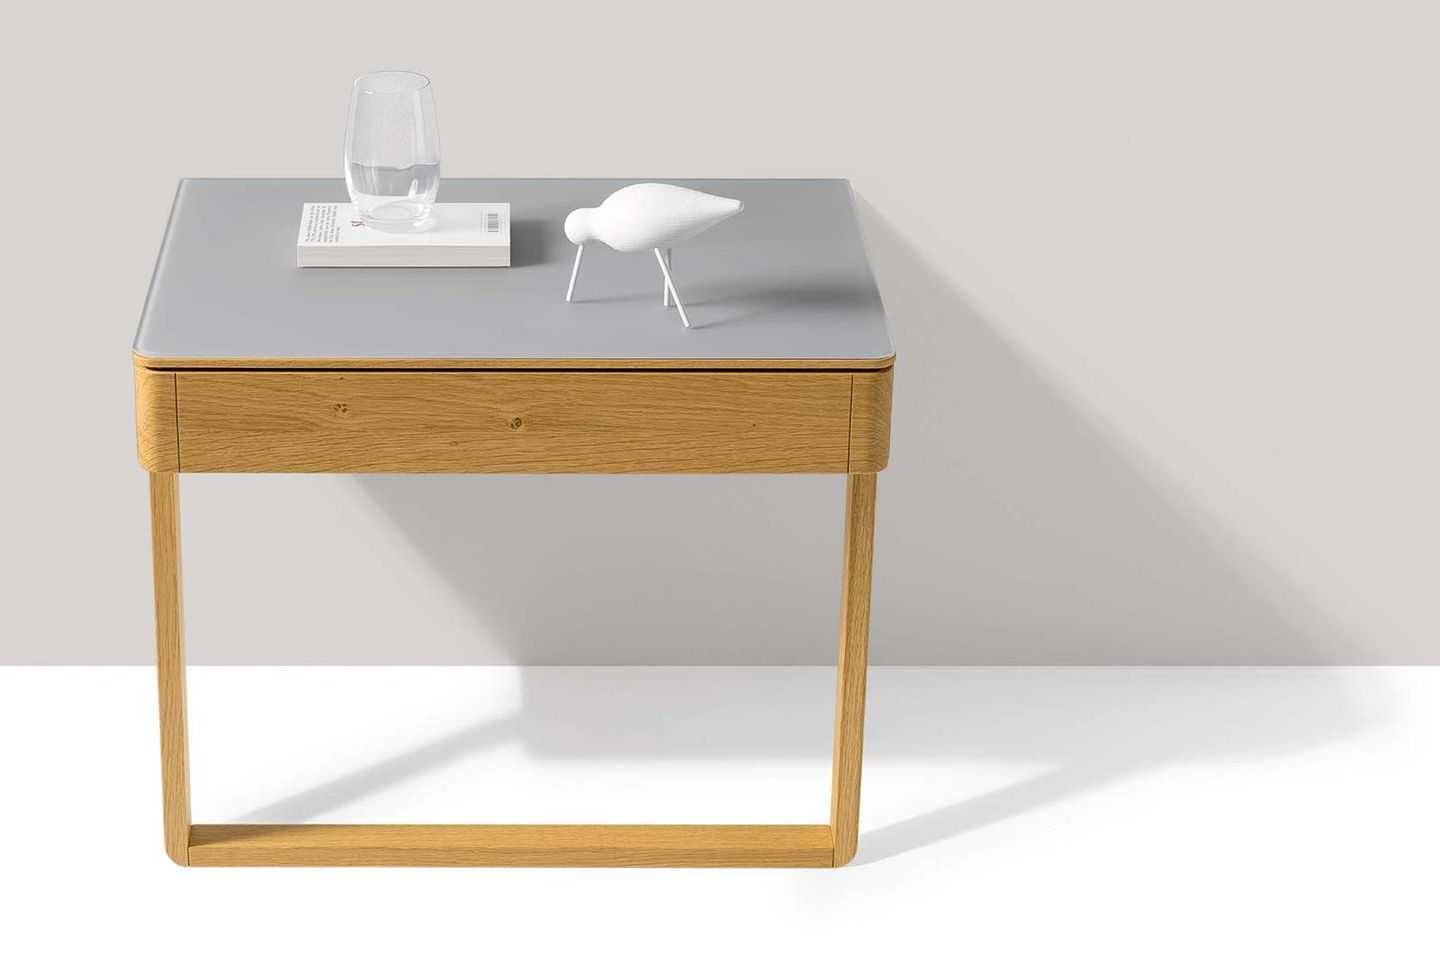 float bedside cabinet made of wood with glass surface and wooden frame